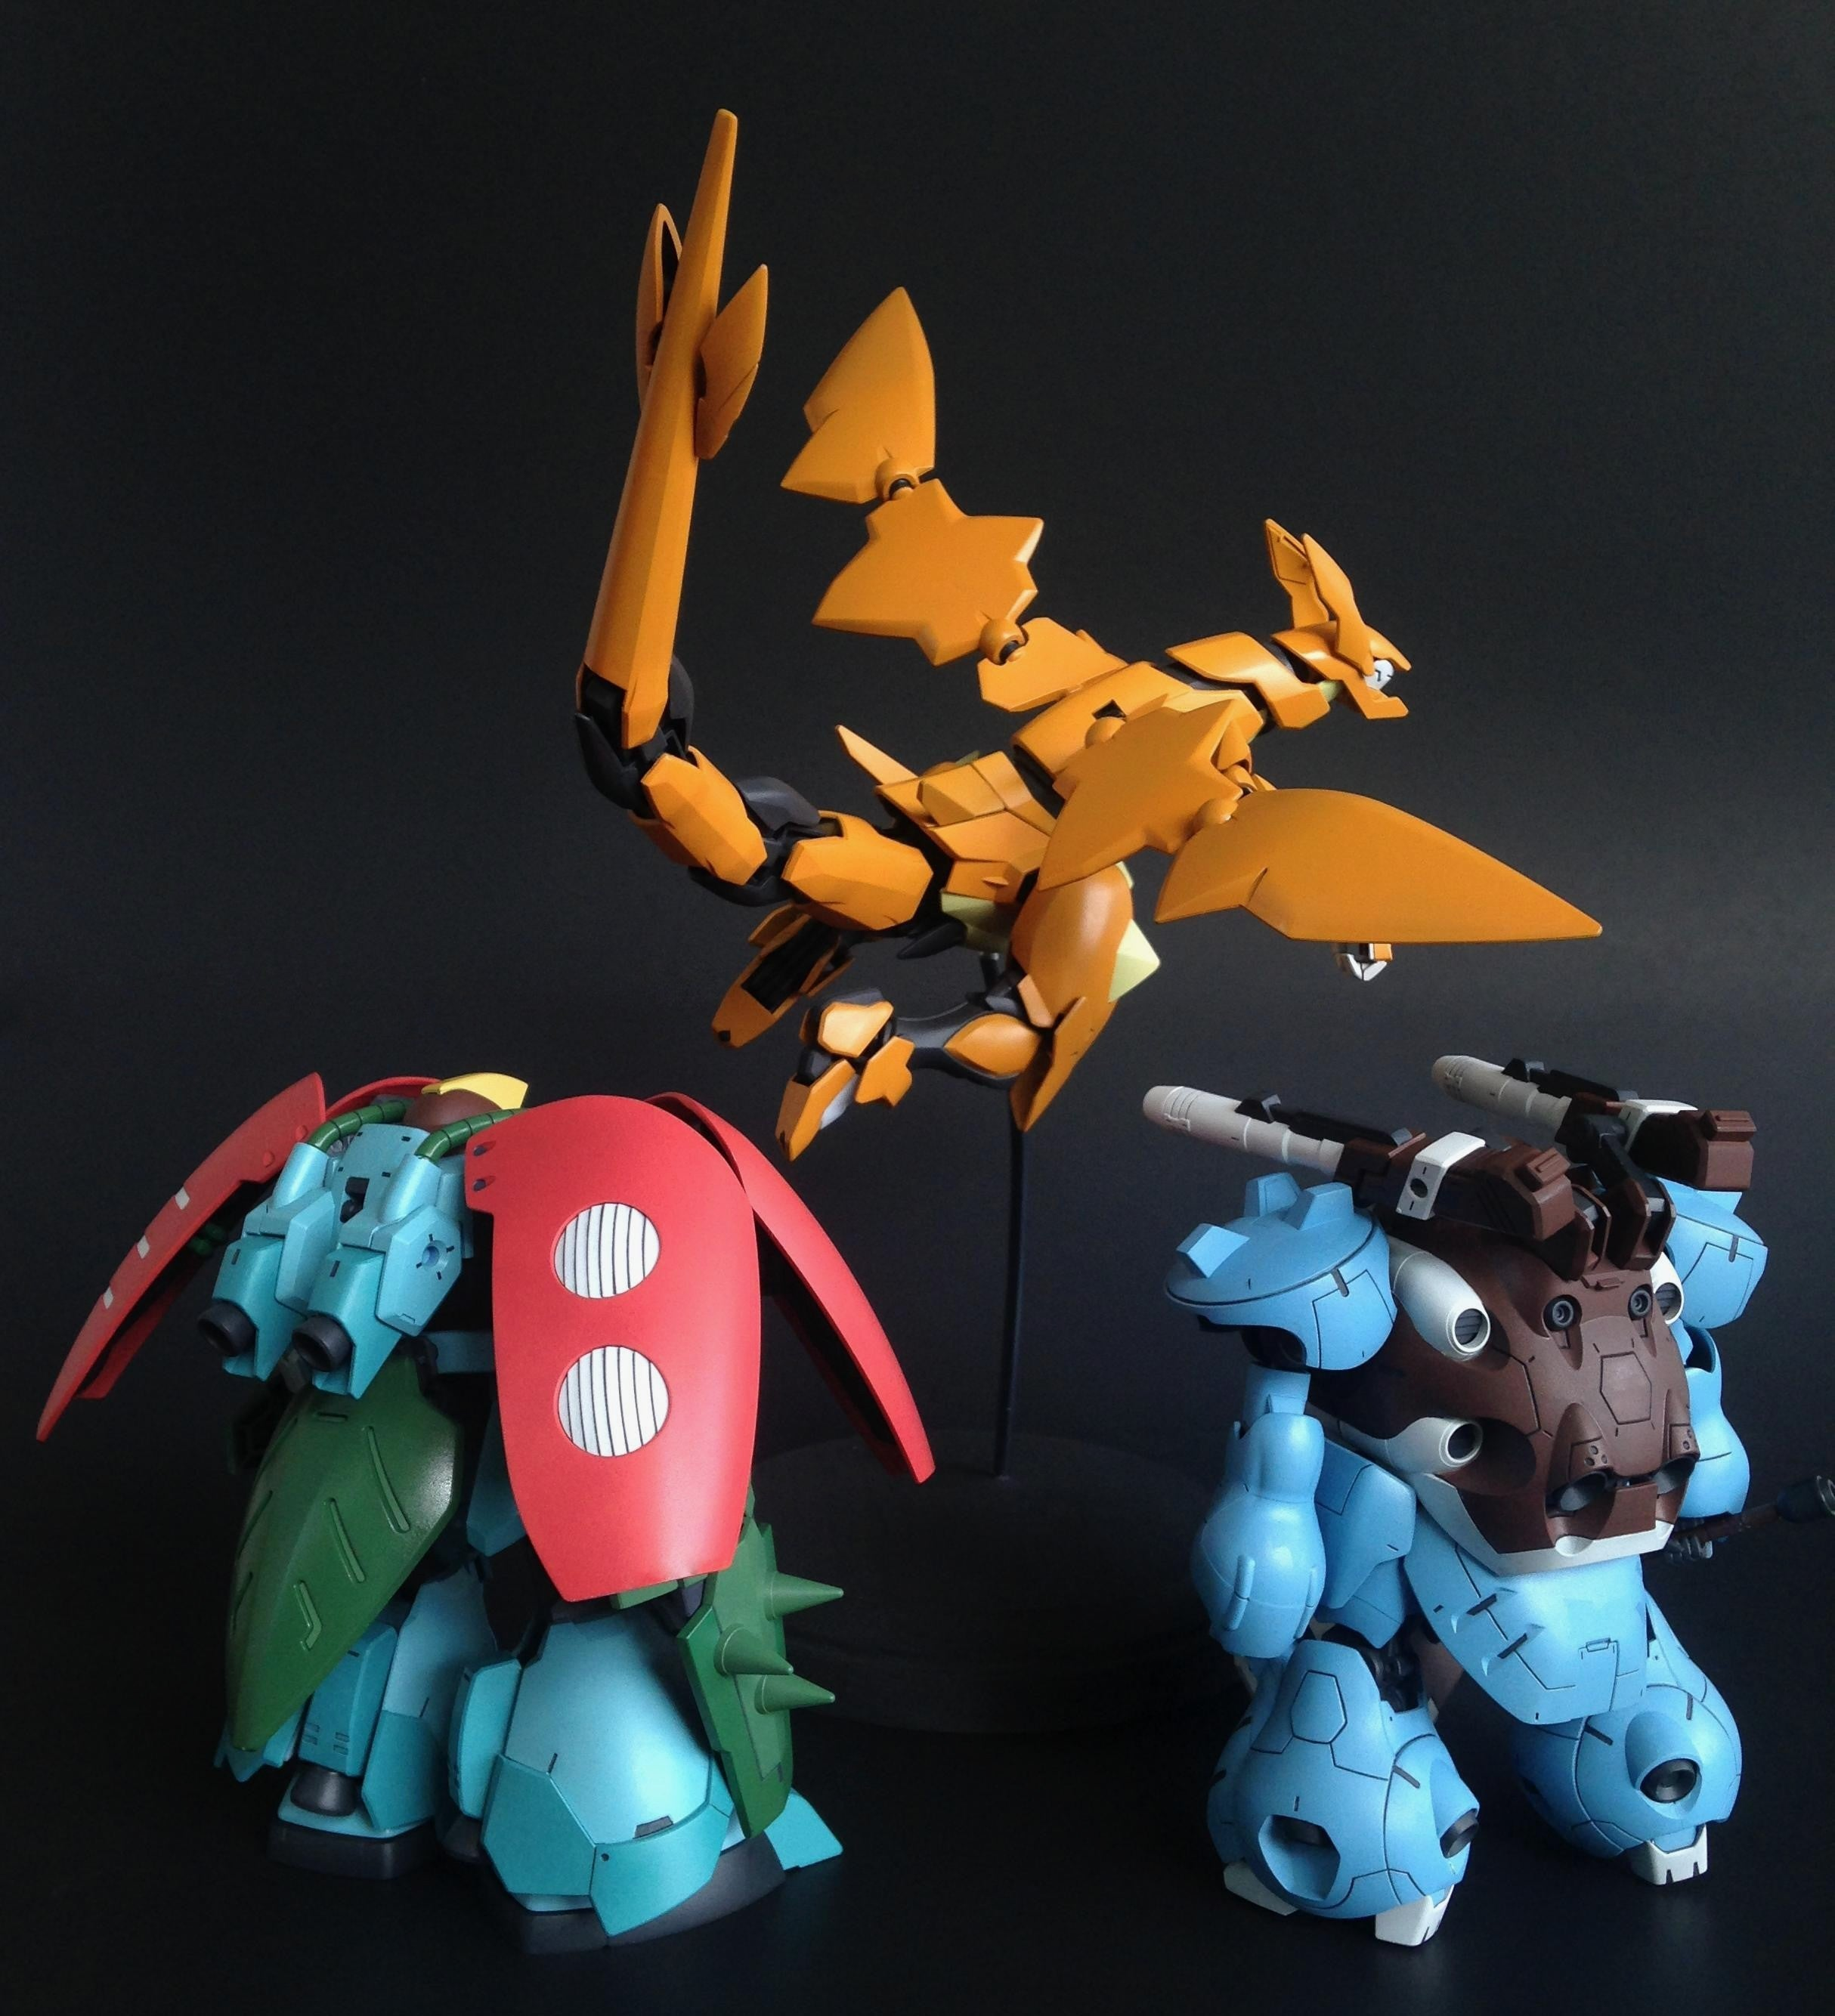 Pokémon vs Gundam